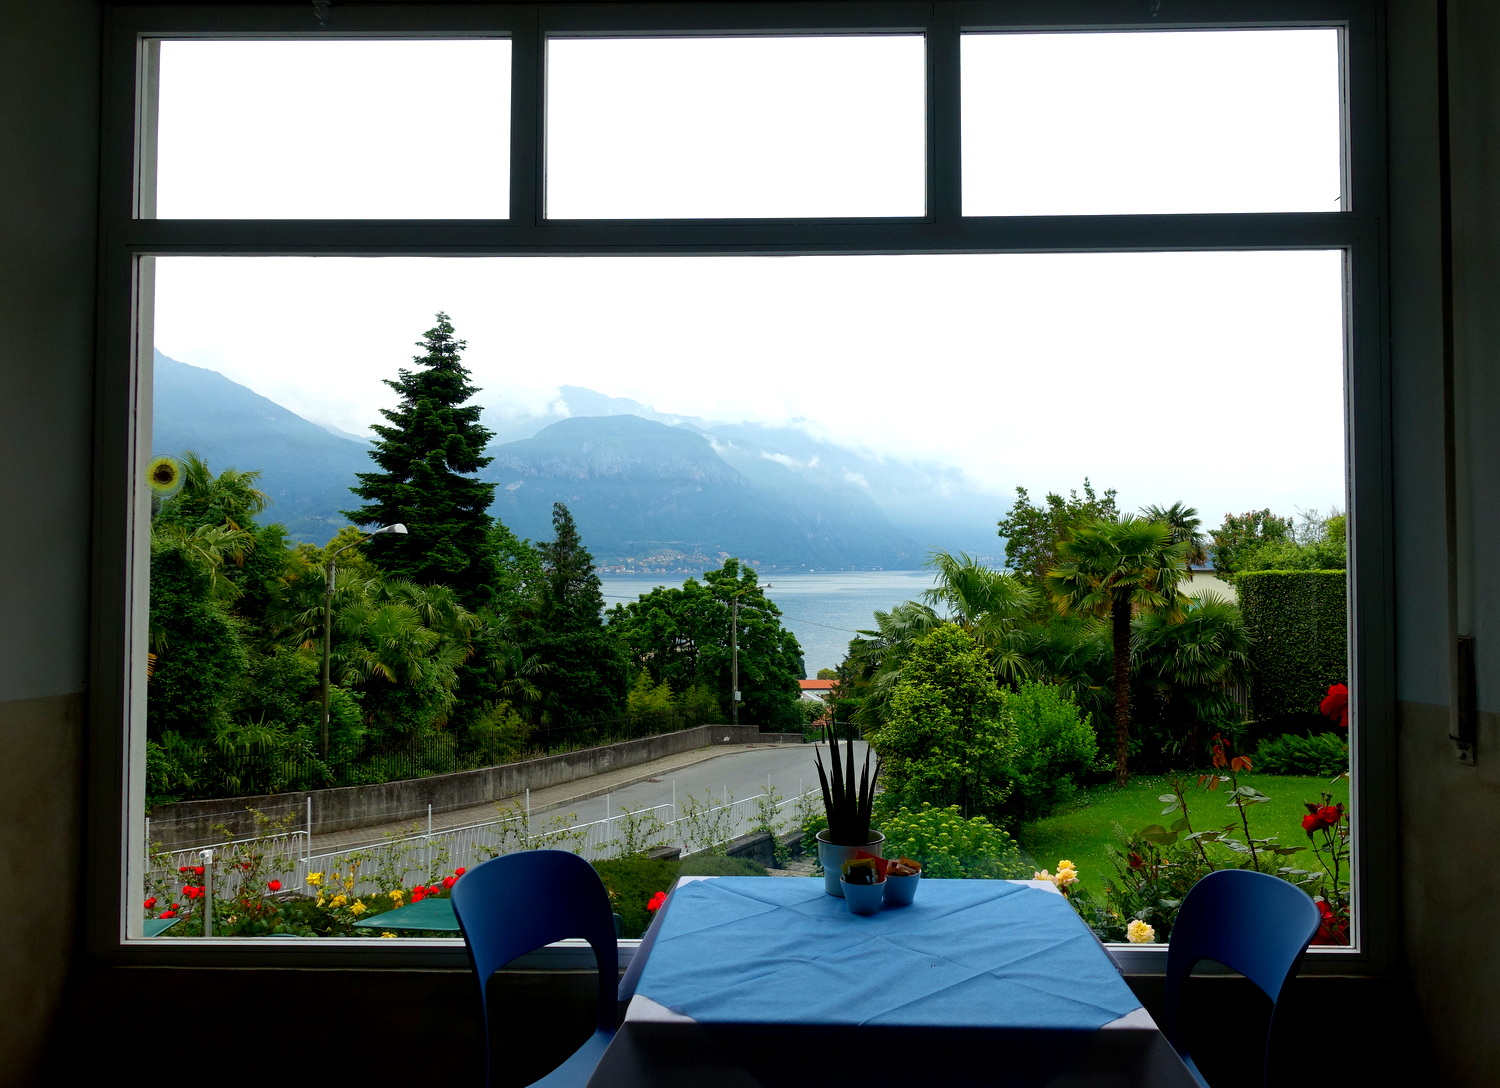 Enjoy breakfast with a view at Hotel Loveno in Menaggio, Lago di Como.